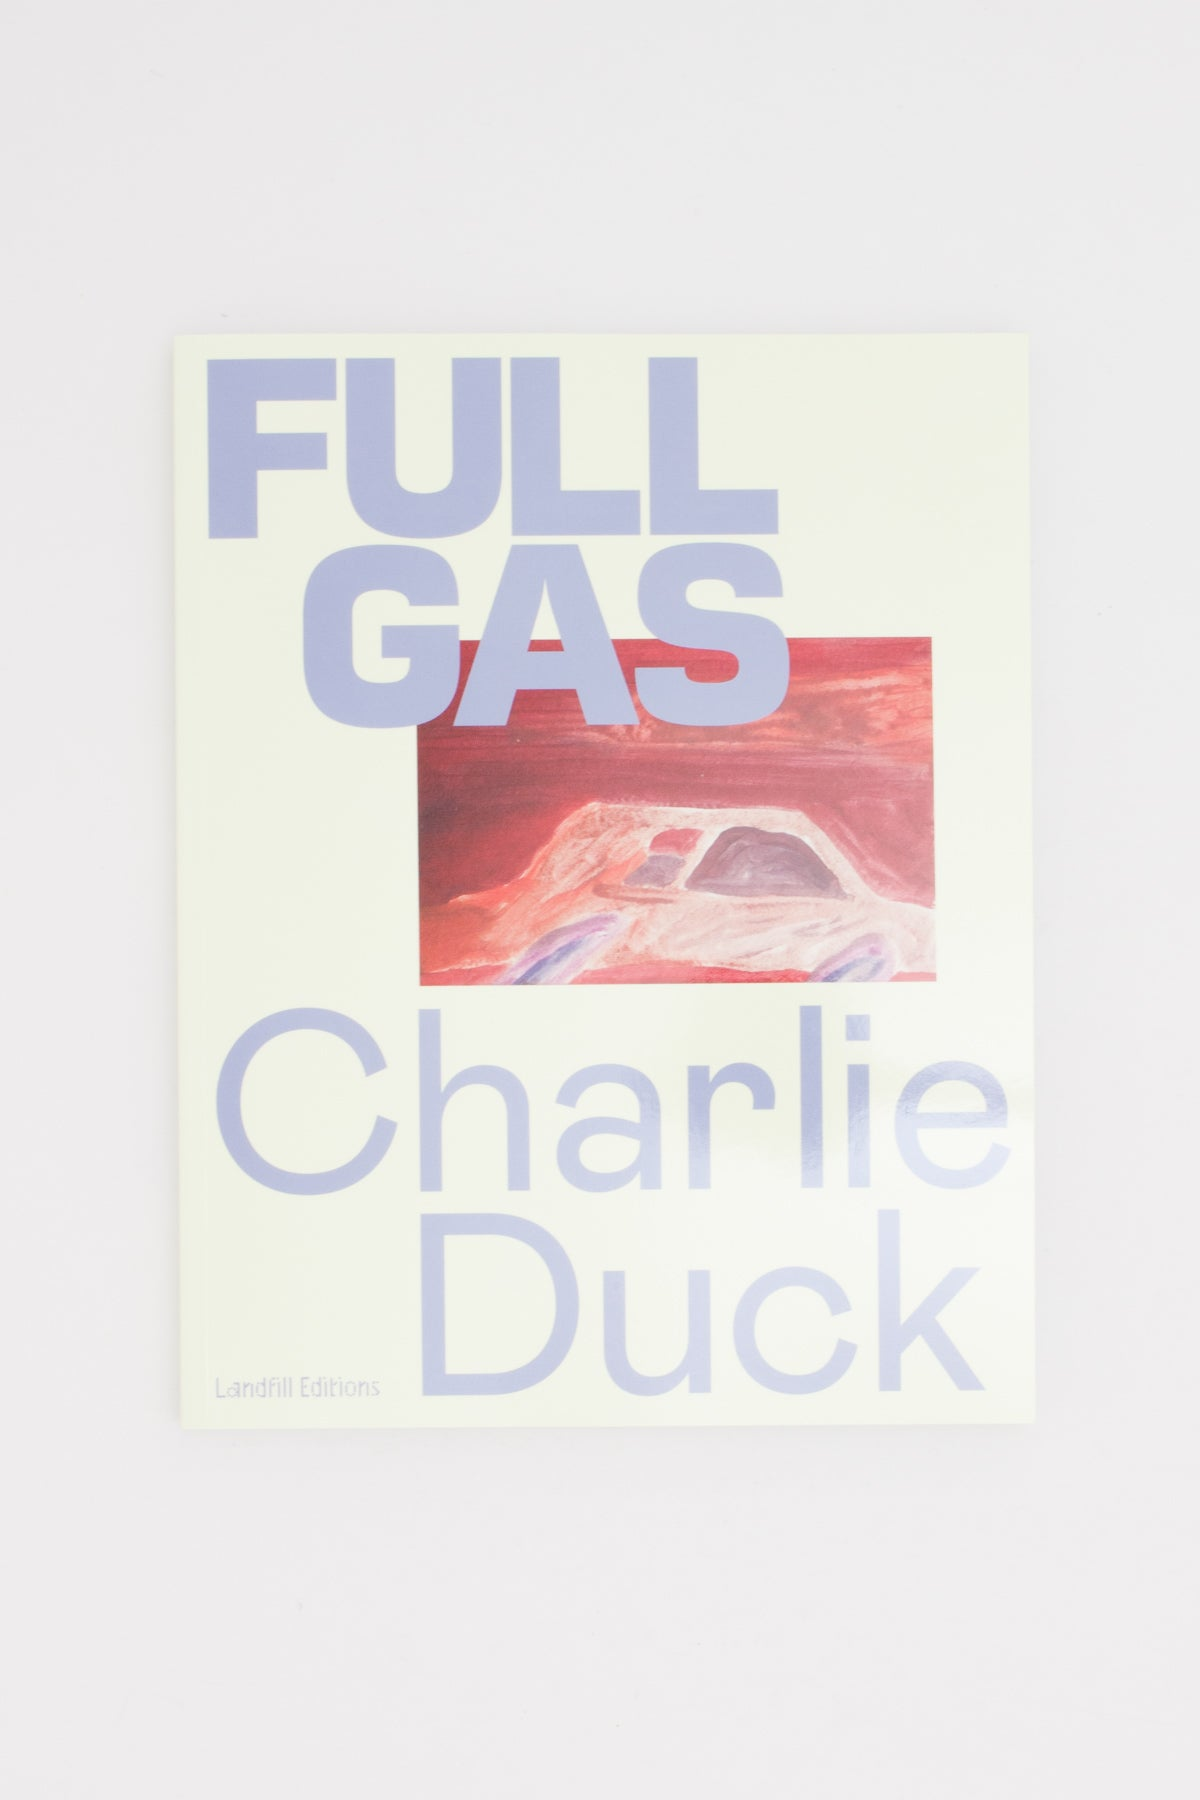 FULL GAS - Charlie Duck